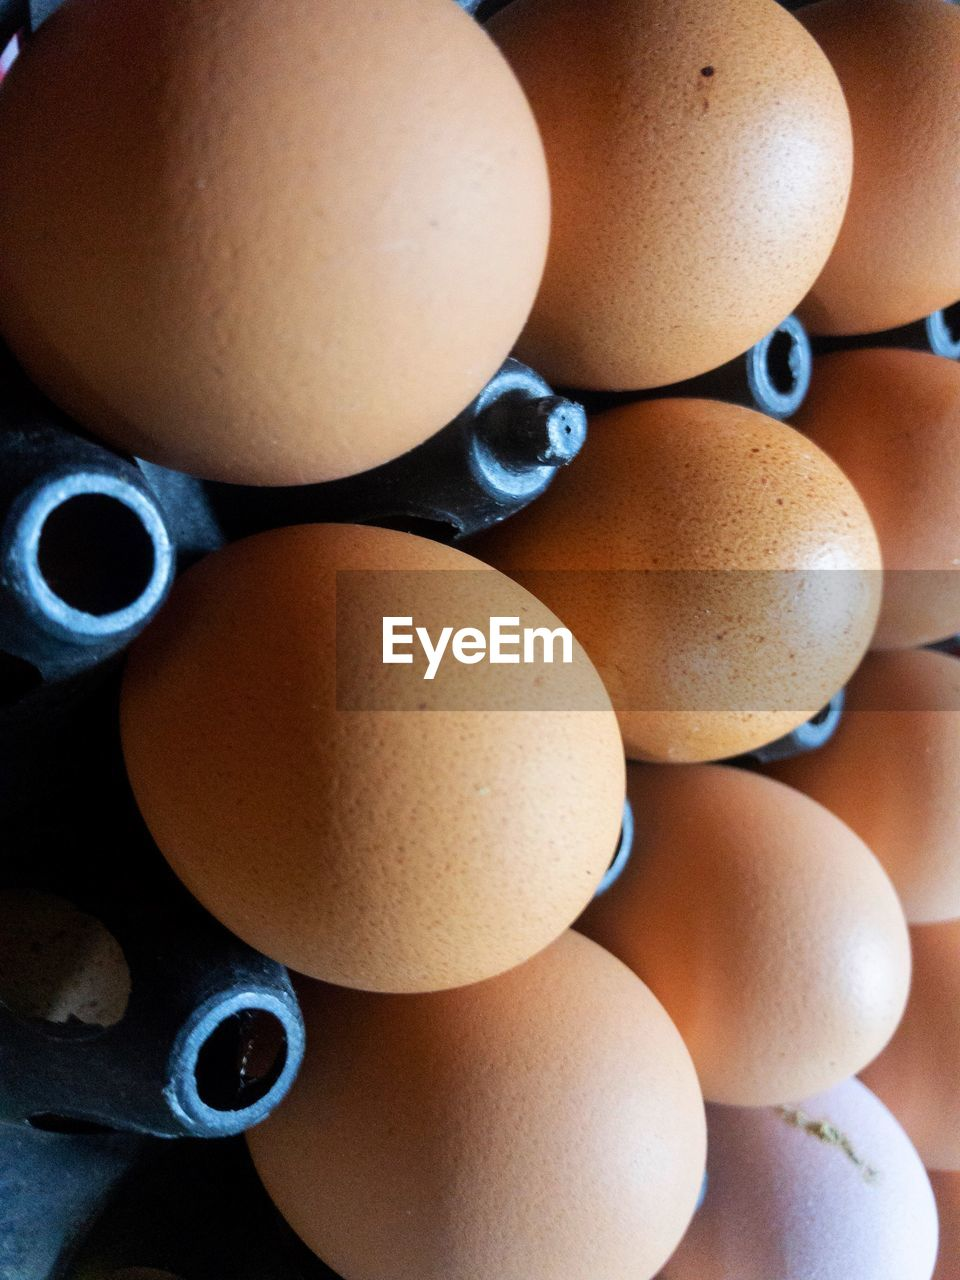 egg, food and drink, food, brown, healthy eating, wellbeing, still life, indoors, close-up, no people, large group of objects, freshness, raw food, full frame, vulnerability, backgrounds, fragility, arrangement, group of objects, directly above